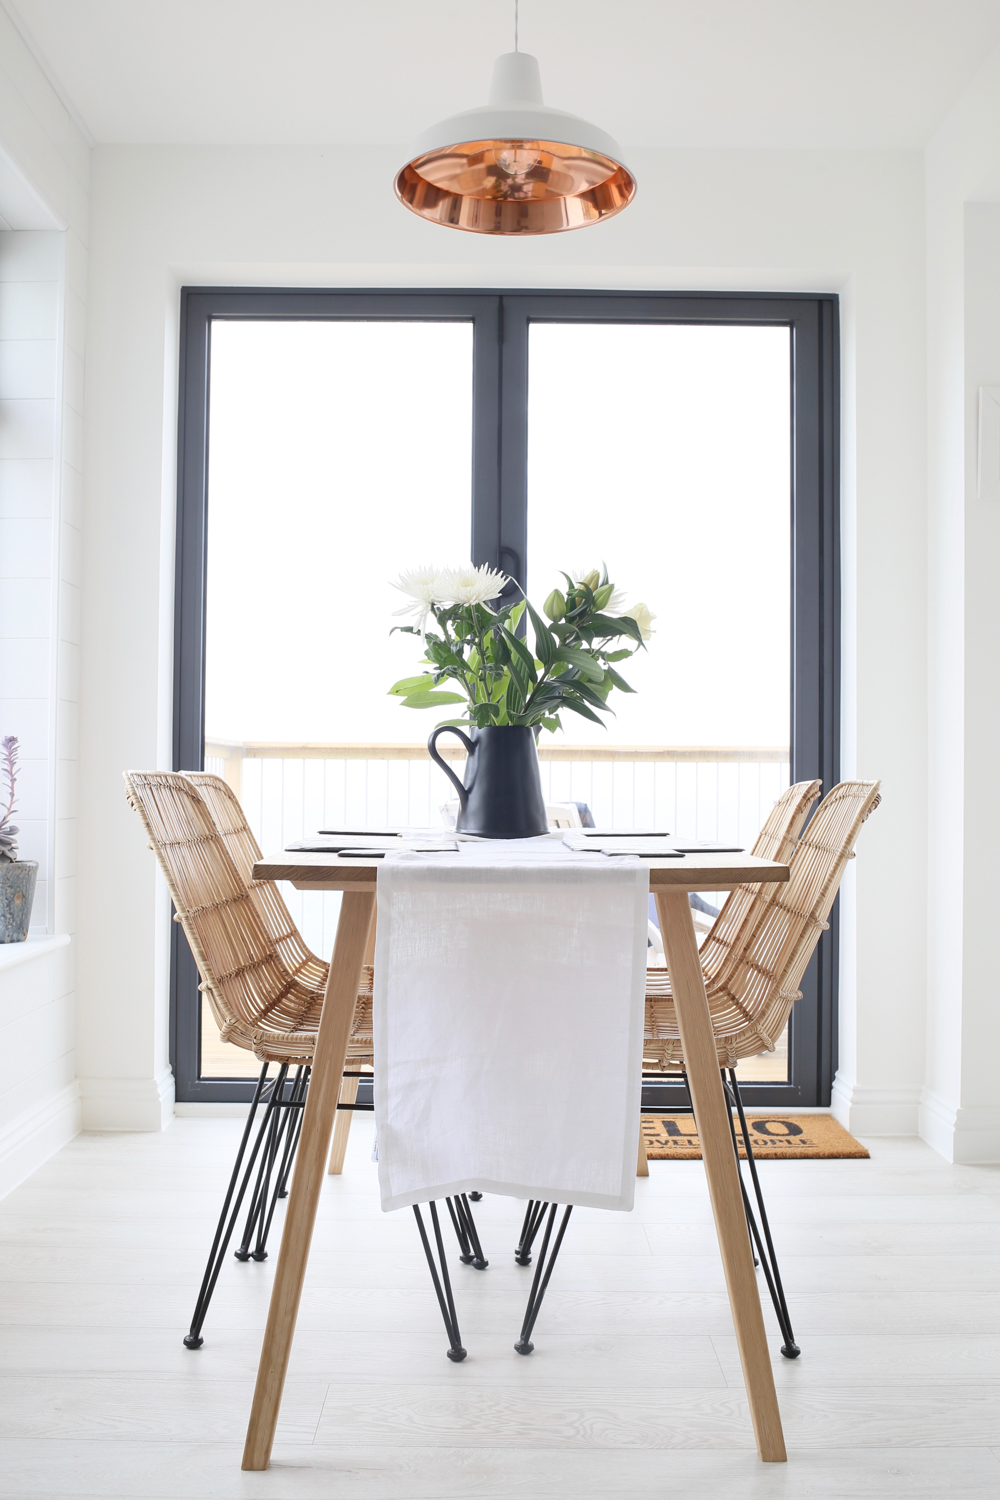 Dining table with rattan chairs | Design Hunter